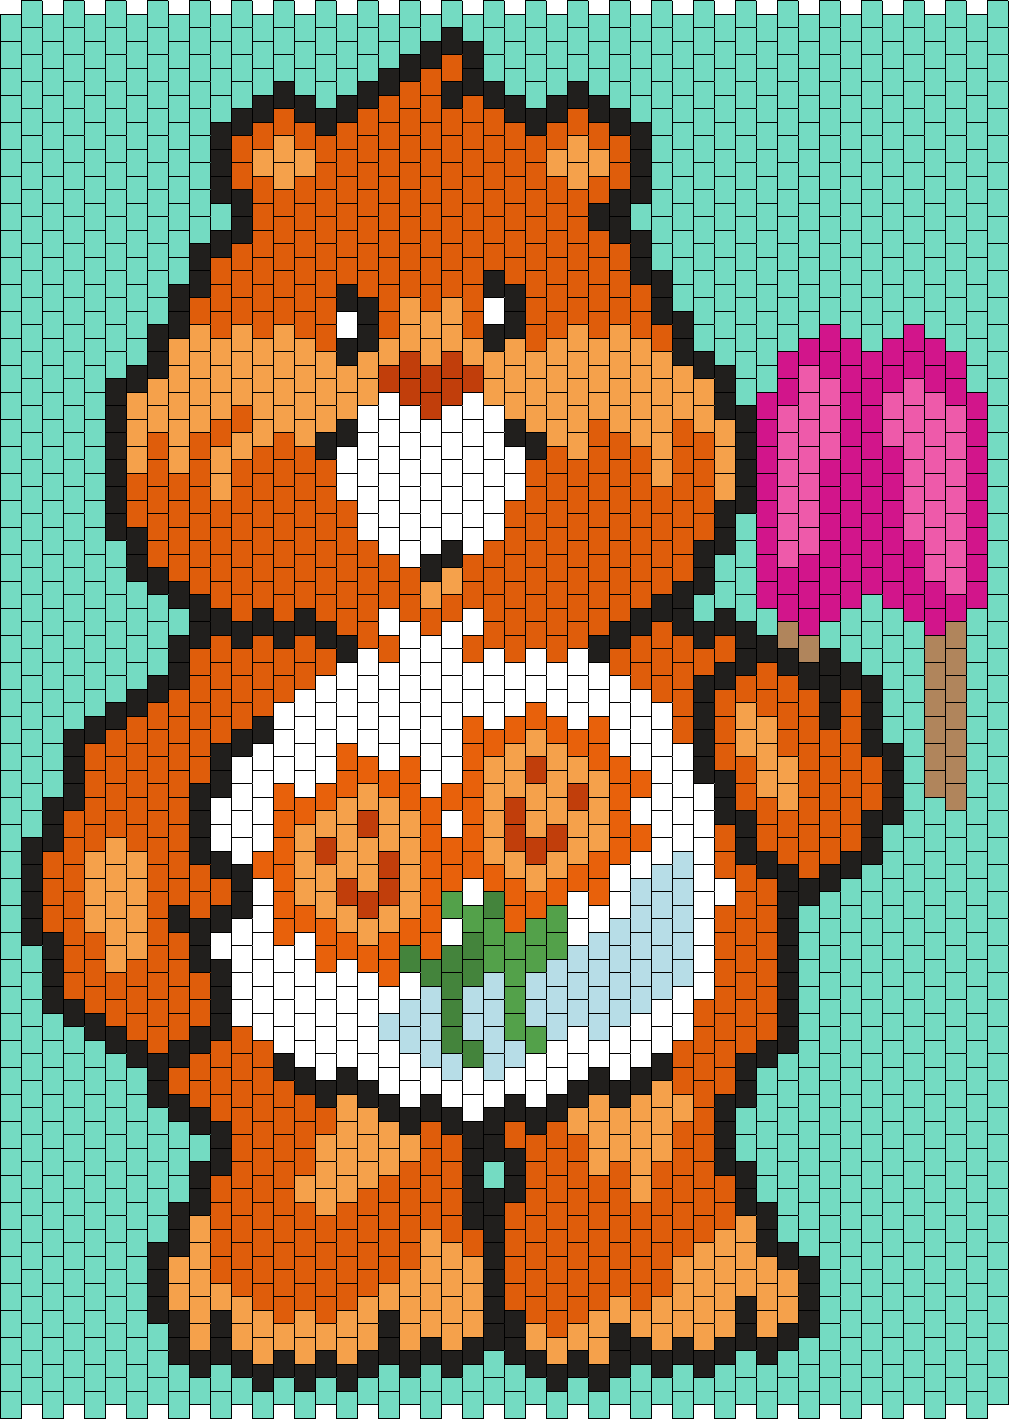 Friend Bear From The Care Bears